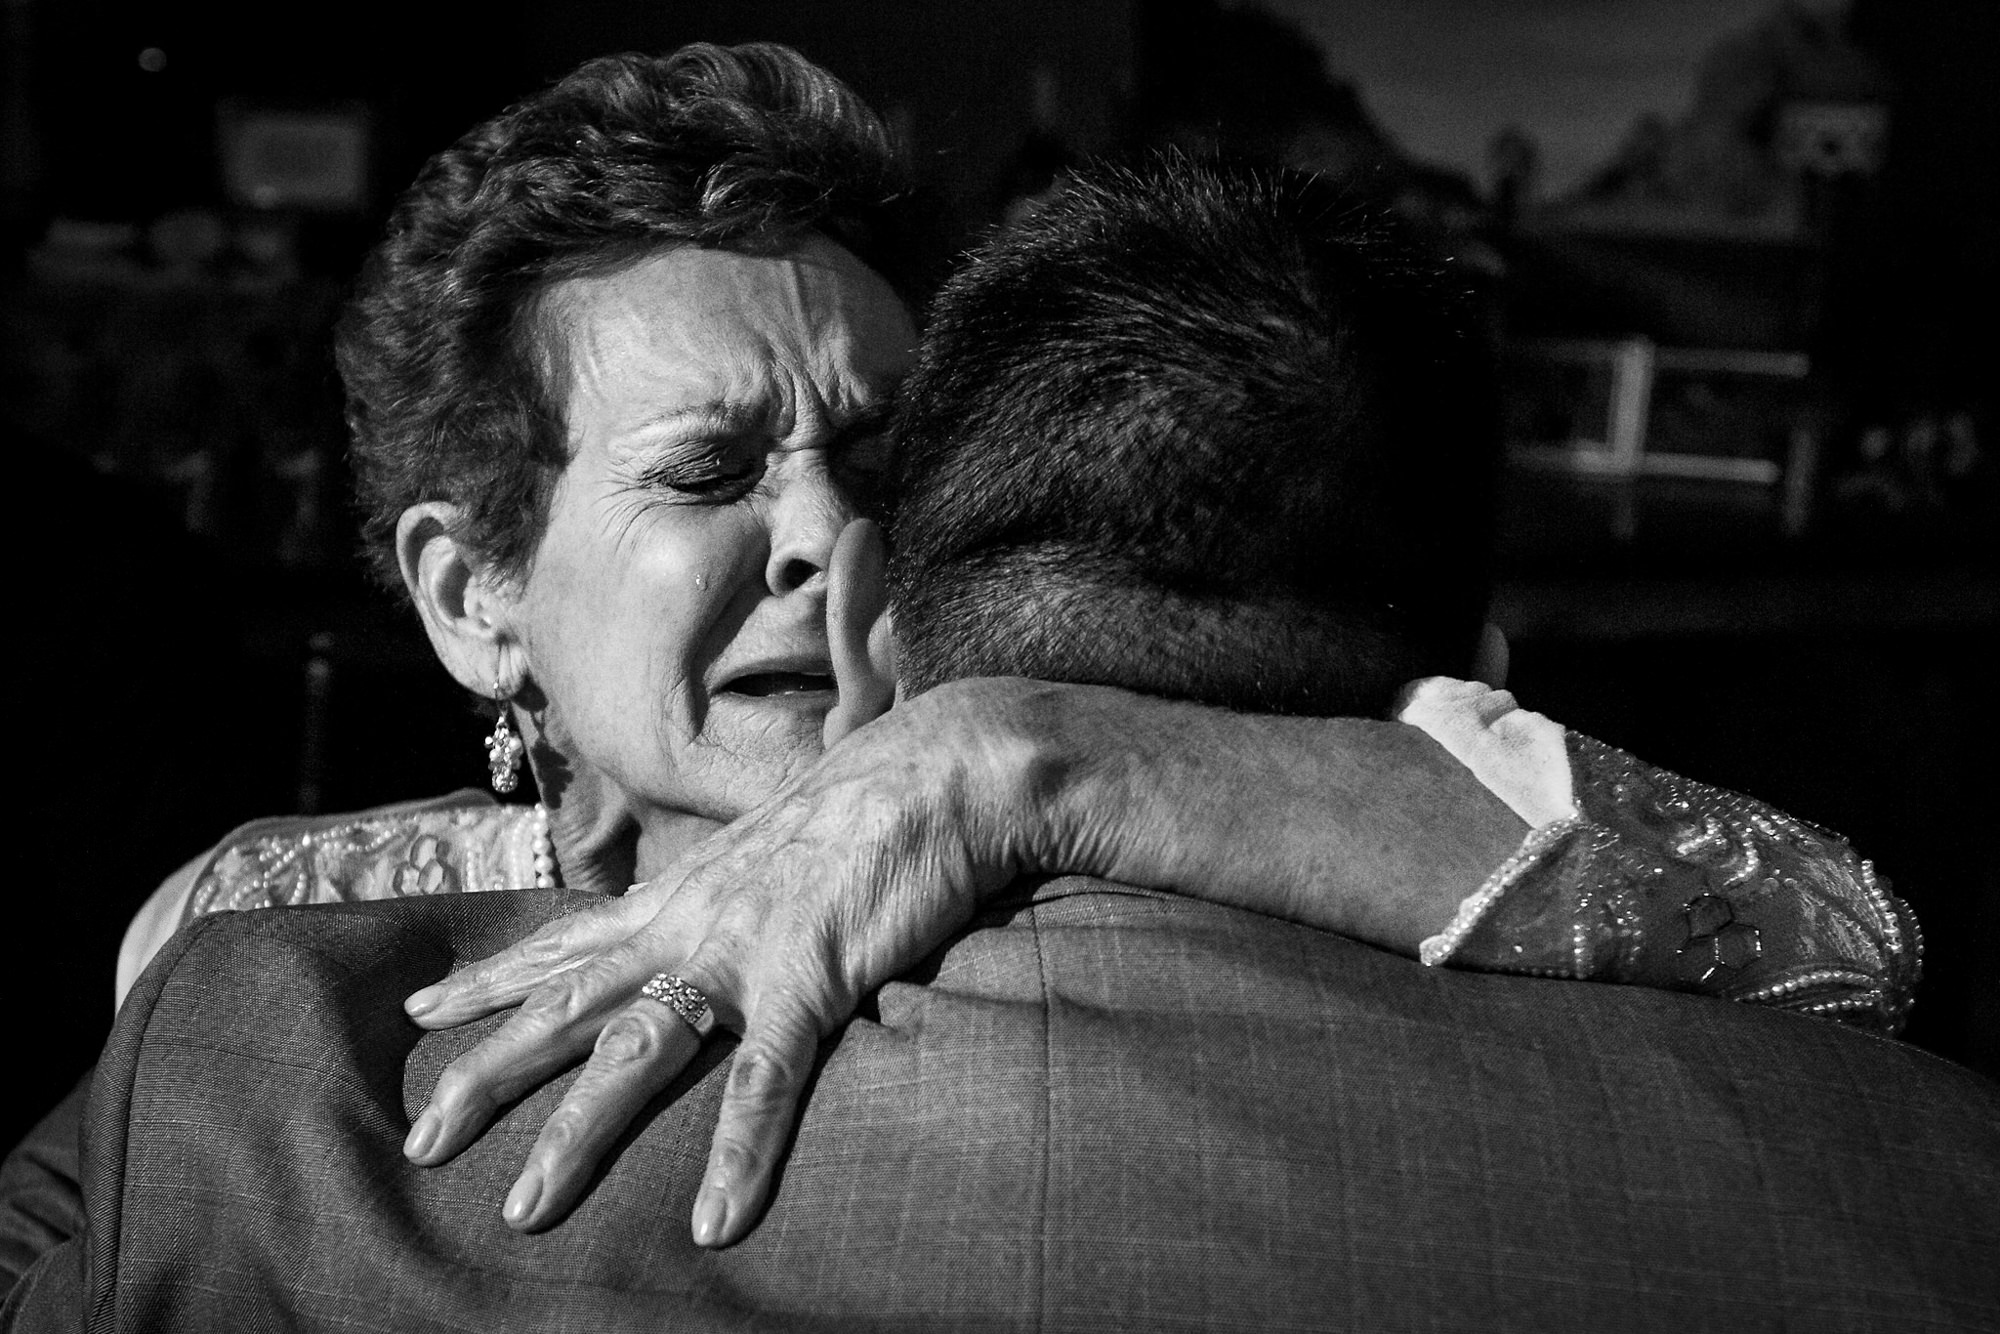 Crying mother embraces her son - photo by Two Mann Studios